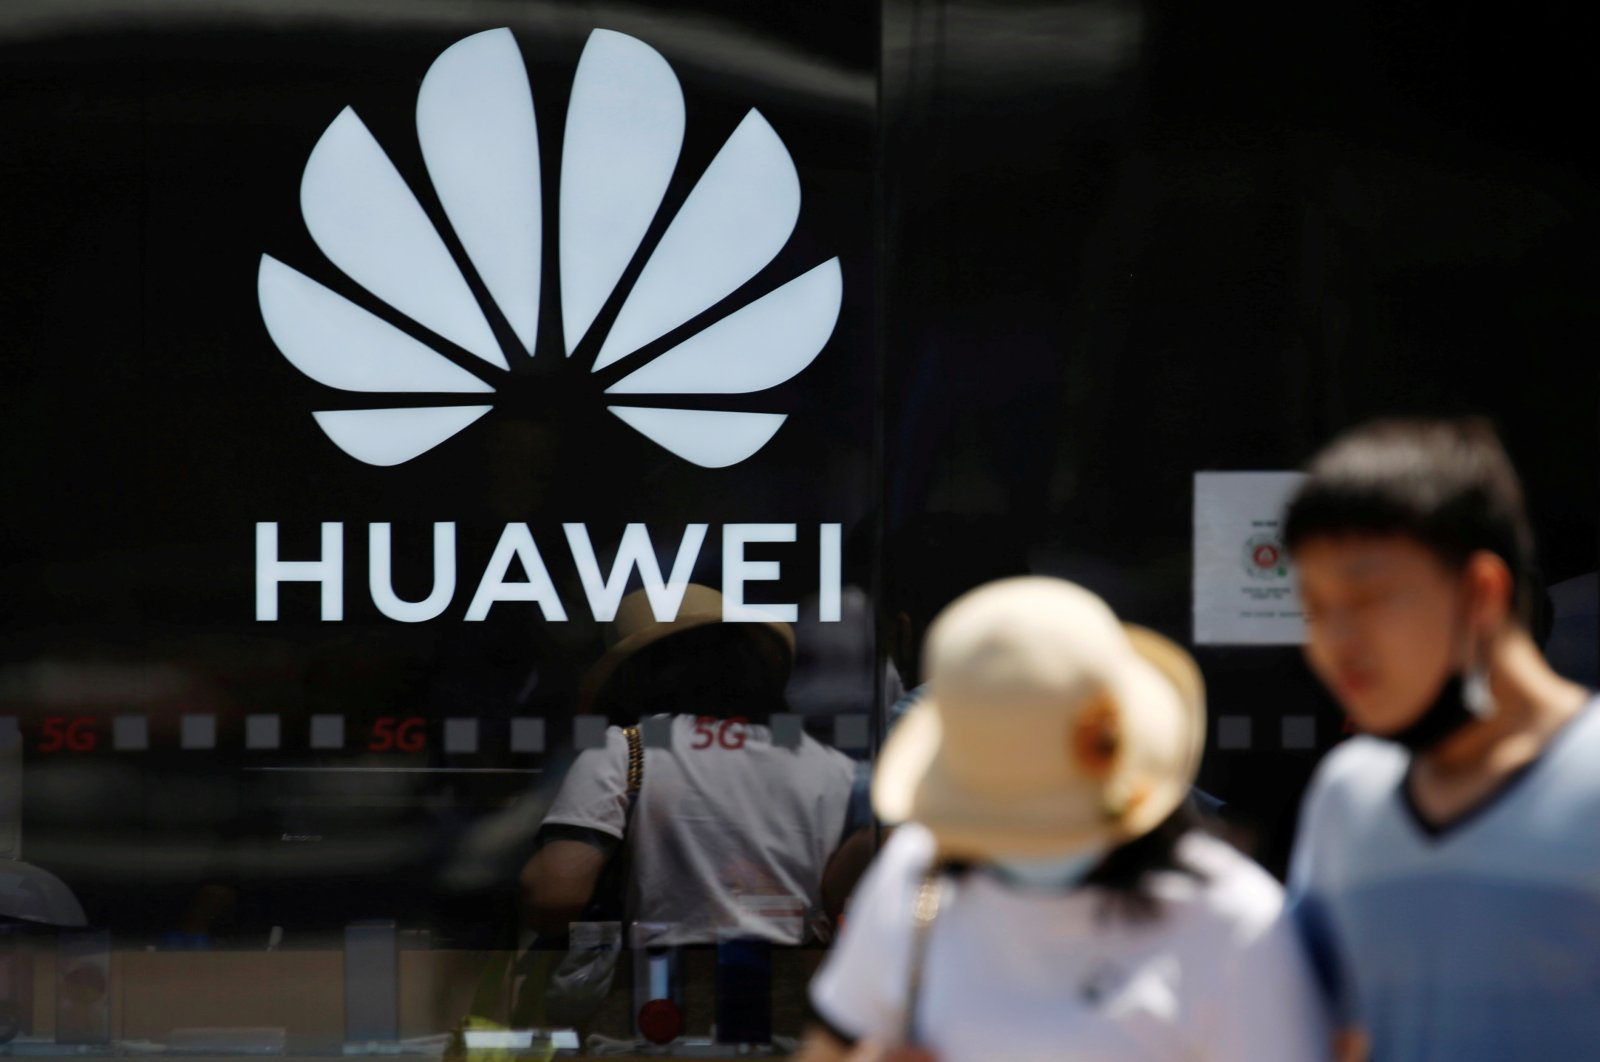 People walk past a Huawei logo on the facade of its store at a shopping complex in Beijing, China July 14, 2020. (Reuters Photo)